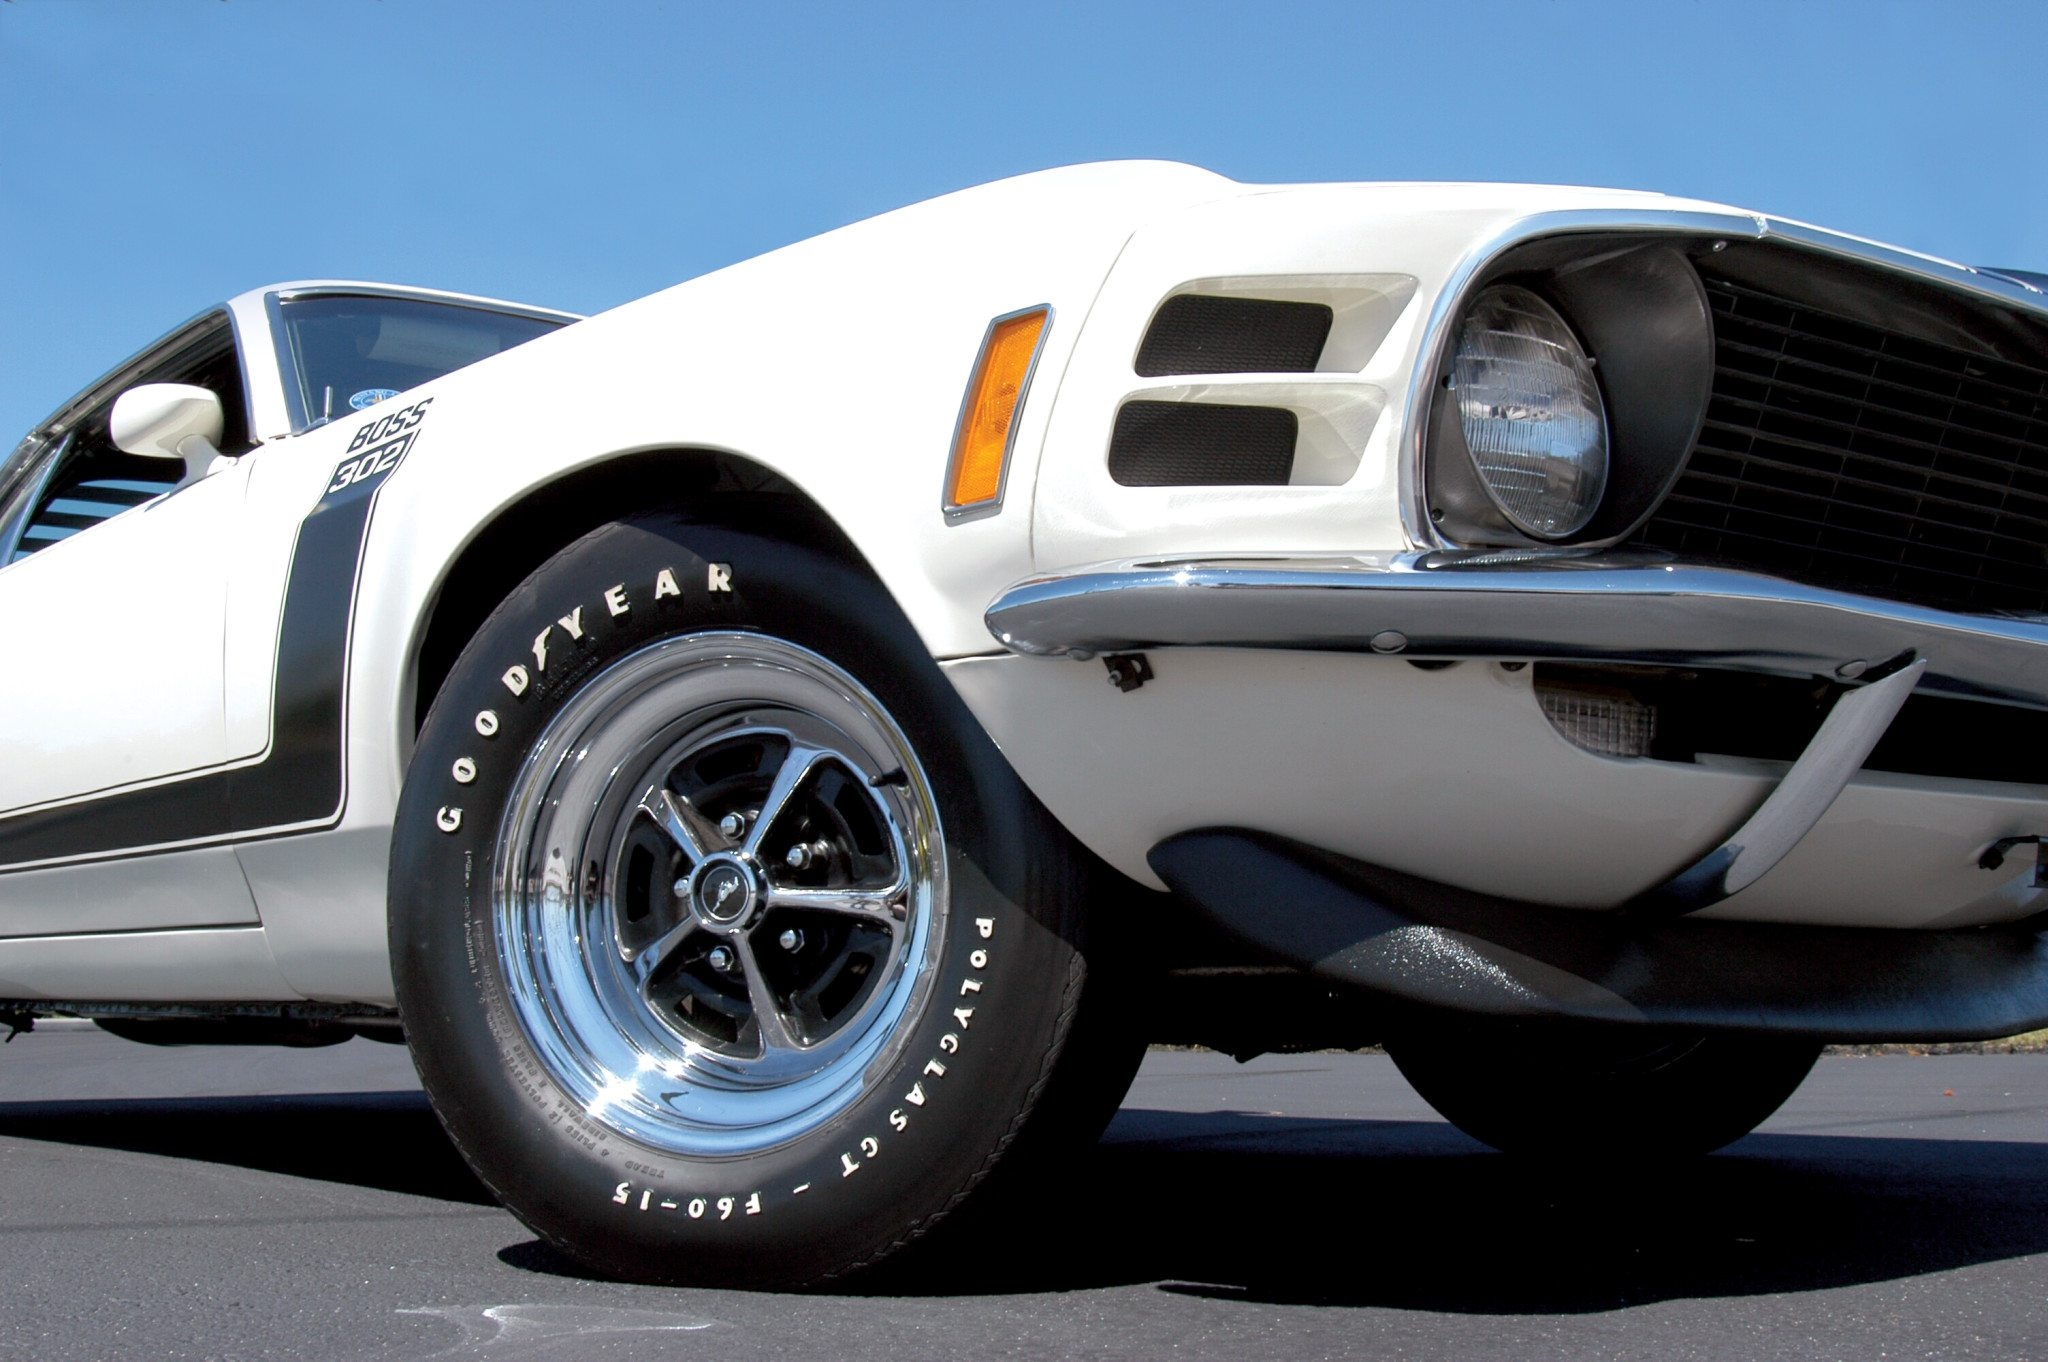 70s Boss 302 Front End Spoiler and Wheel